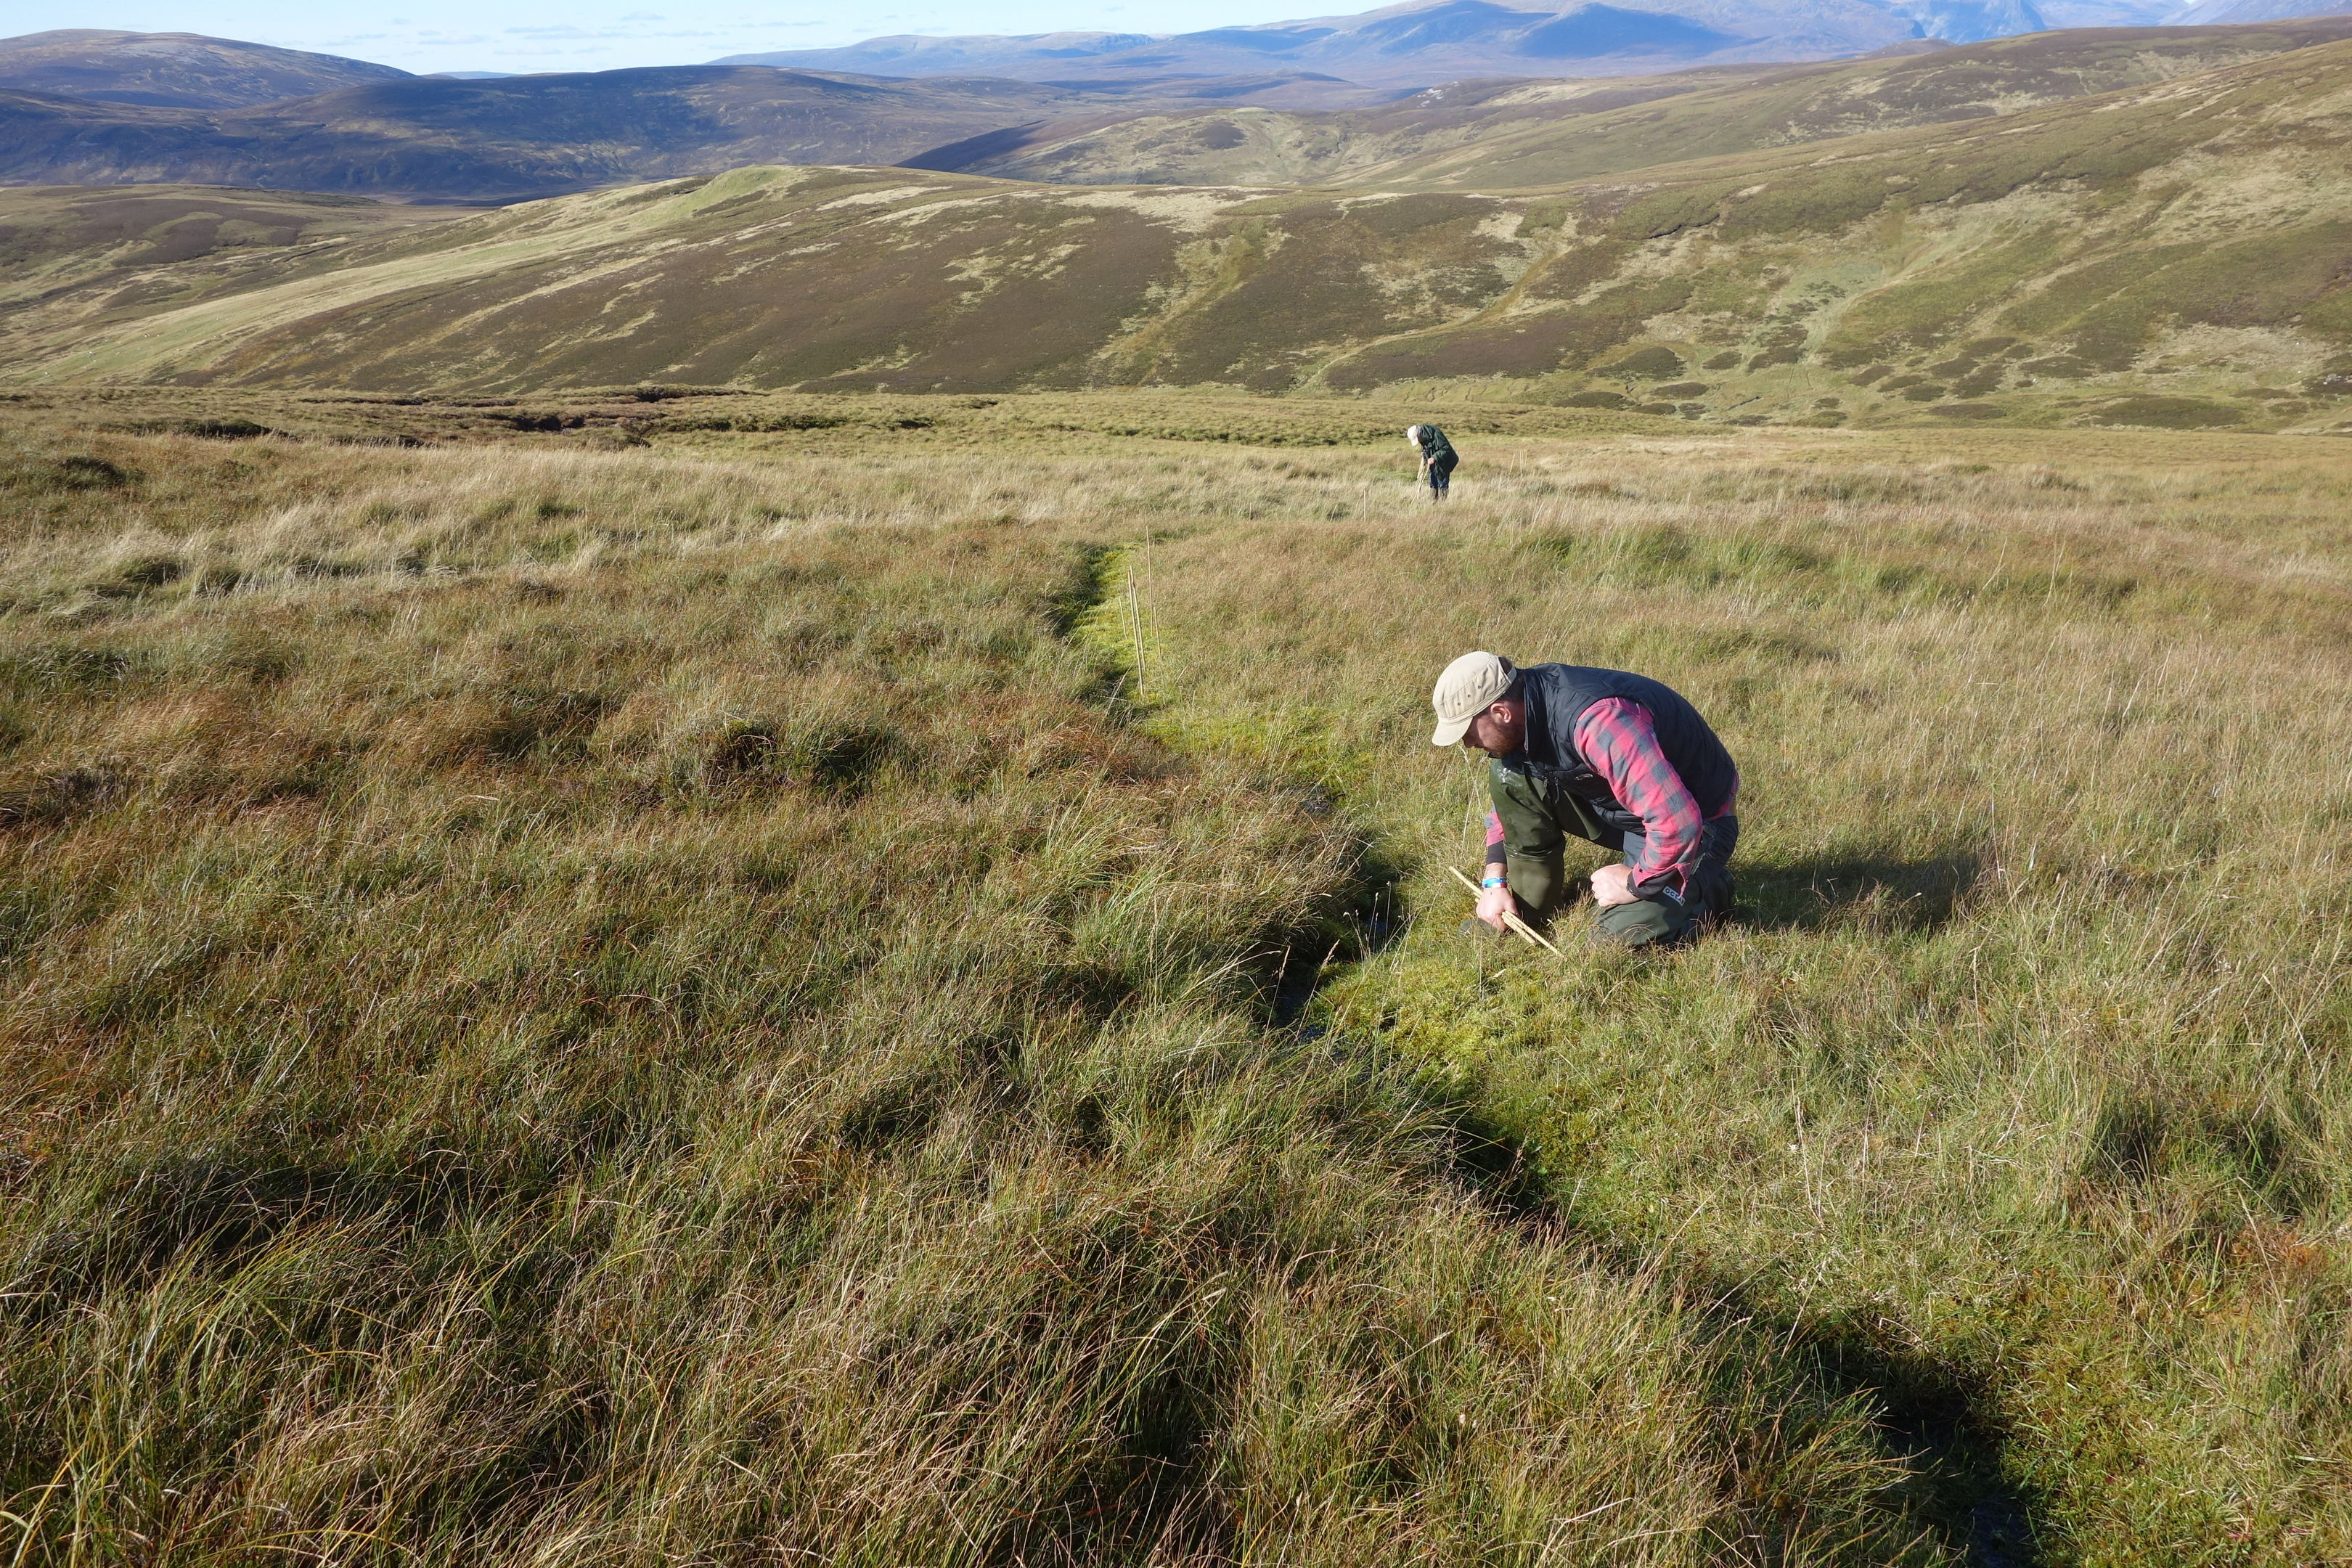 Saxifraga hirculus field work at Fealar Estate with volunteer Steve Wands at the front and Martin Robinson in the back.